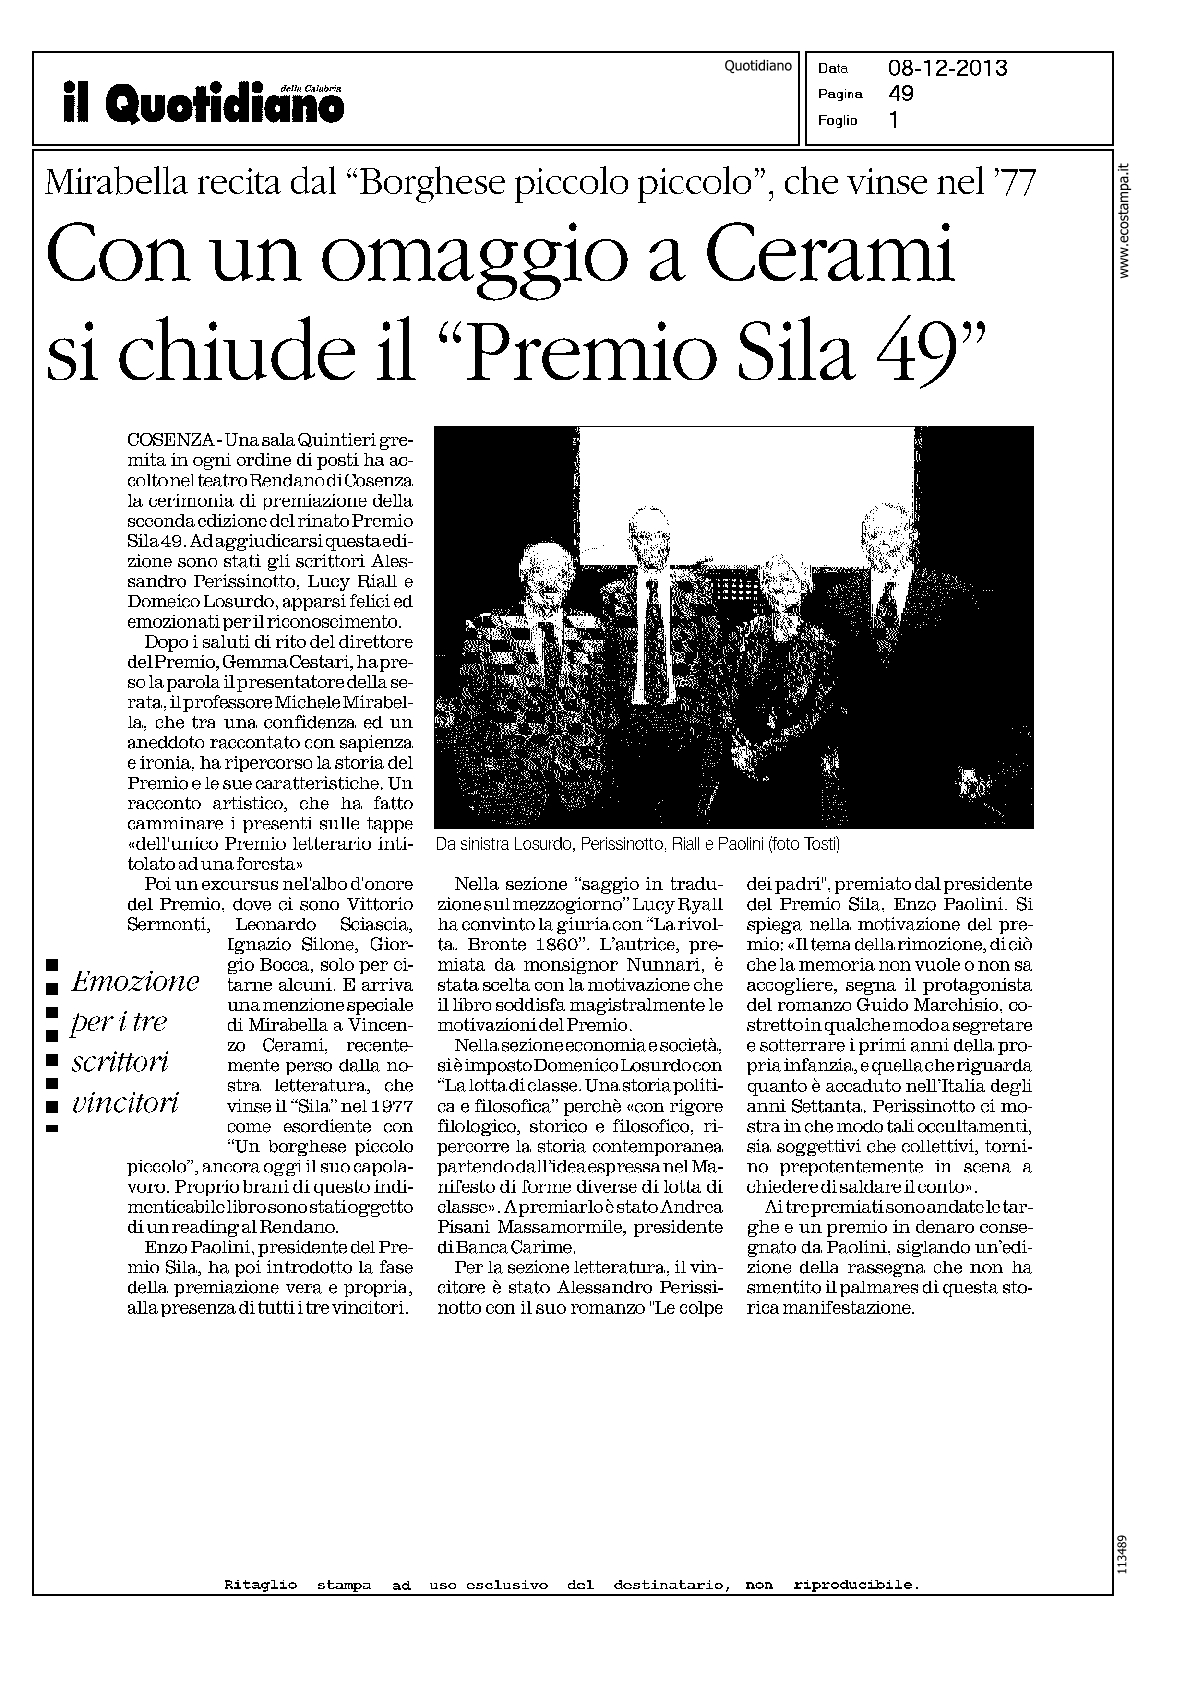 Il Quotidiano - PremioSila 2013